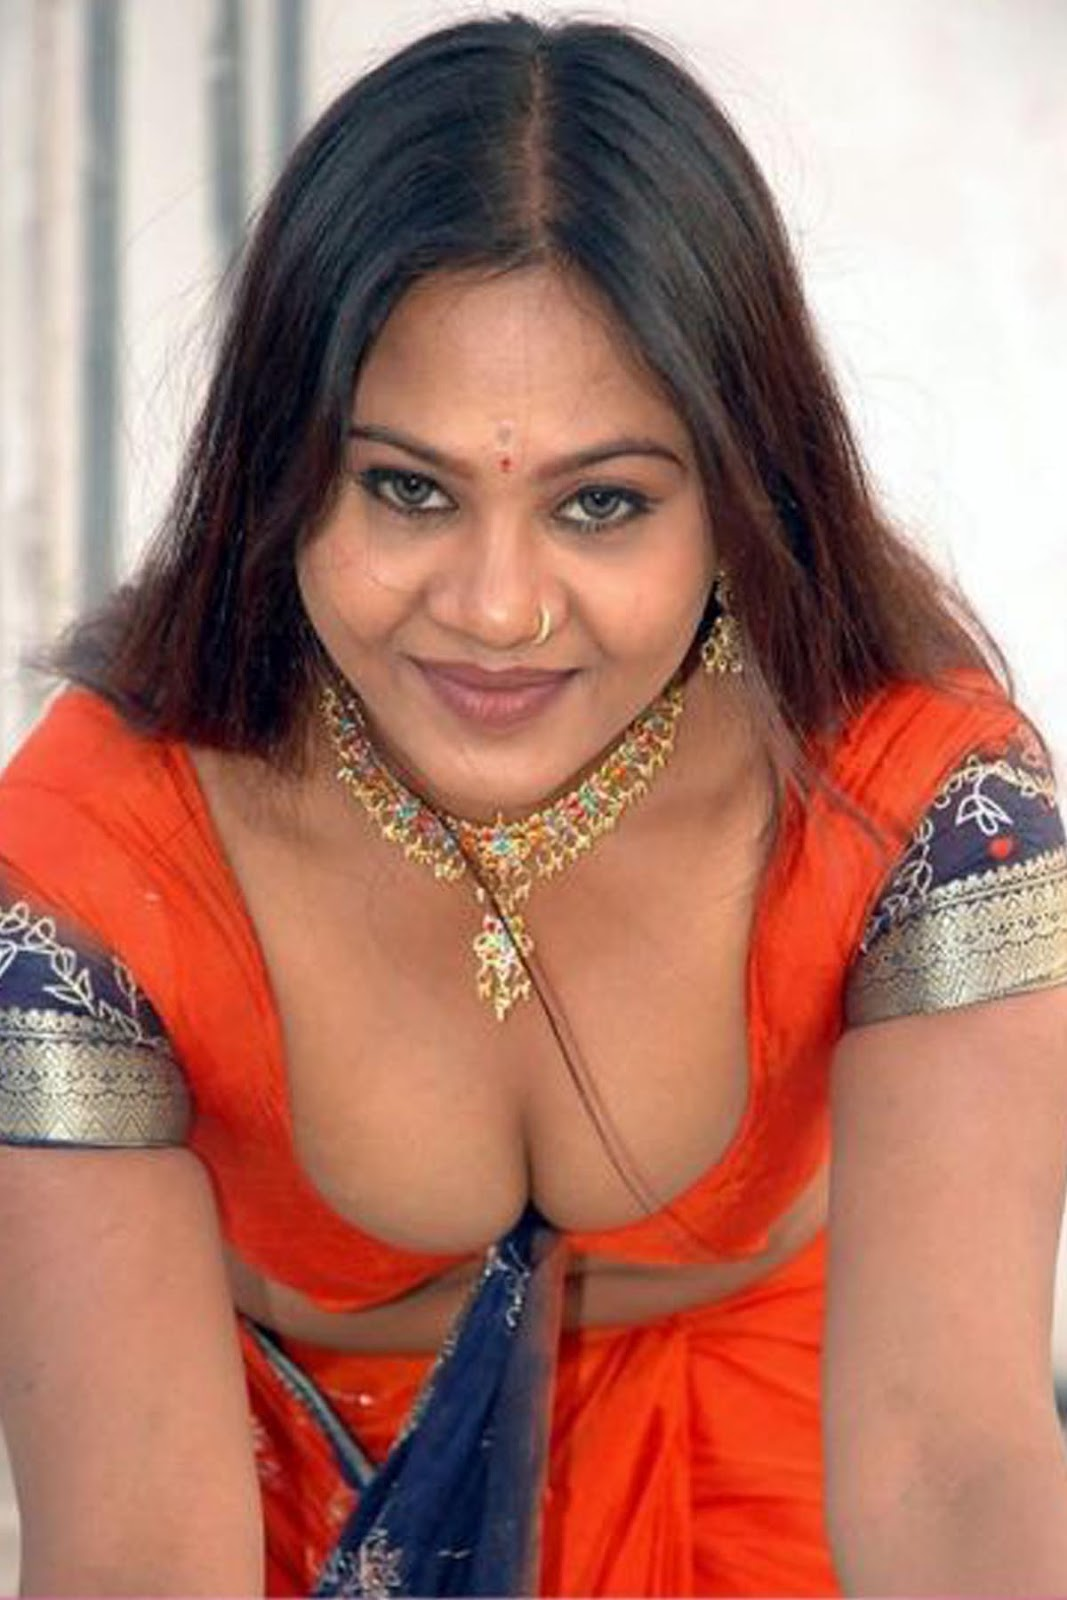 Sexy aunty hot photo